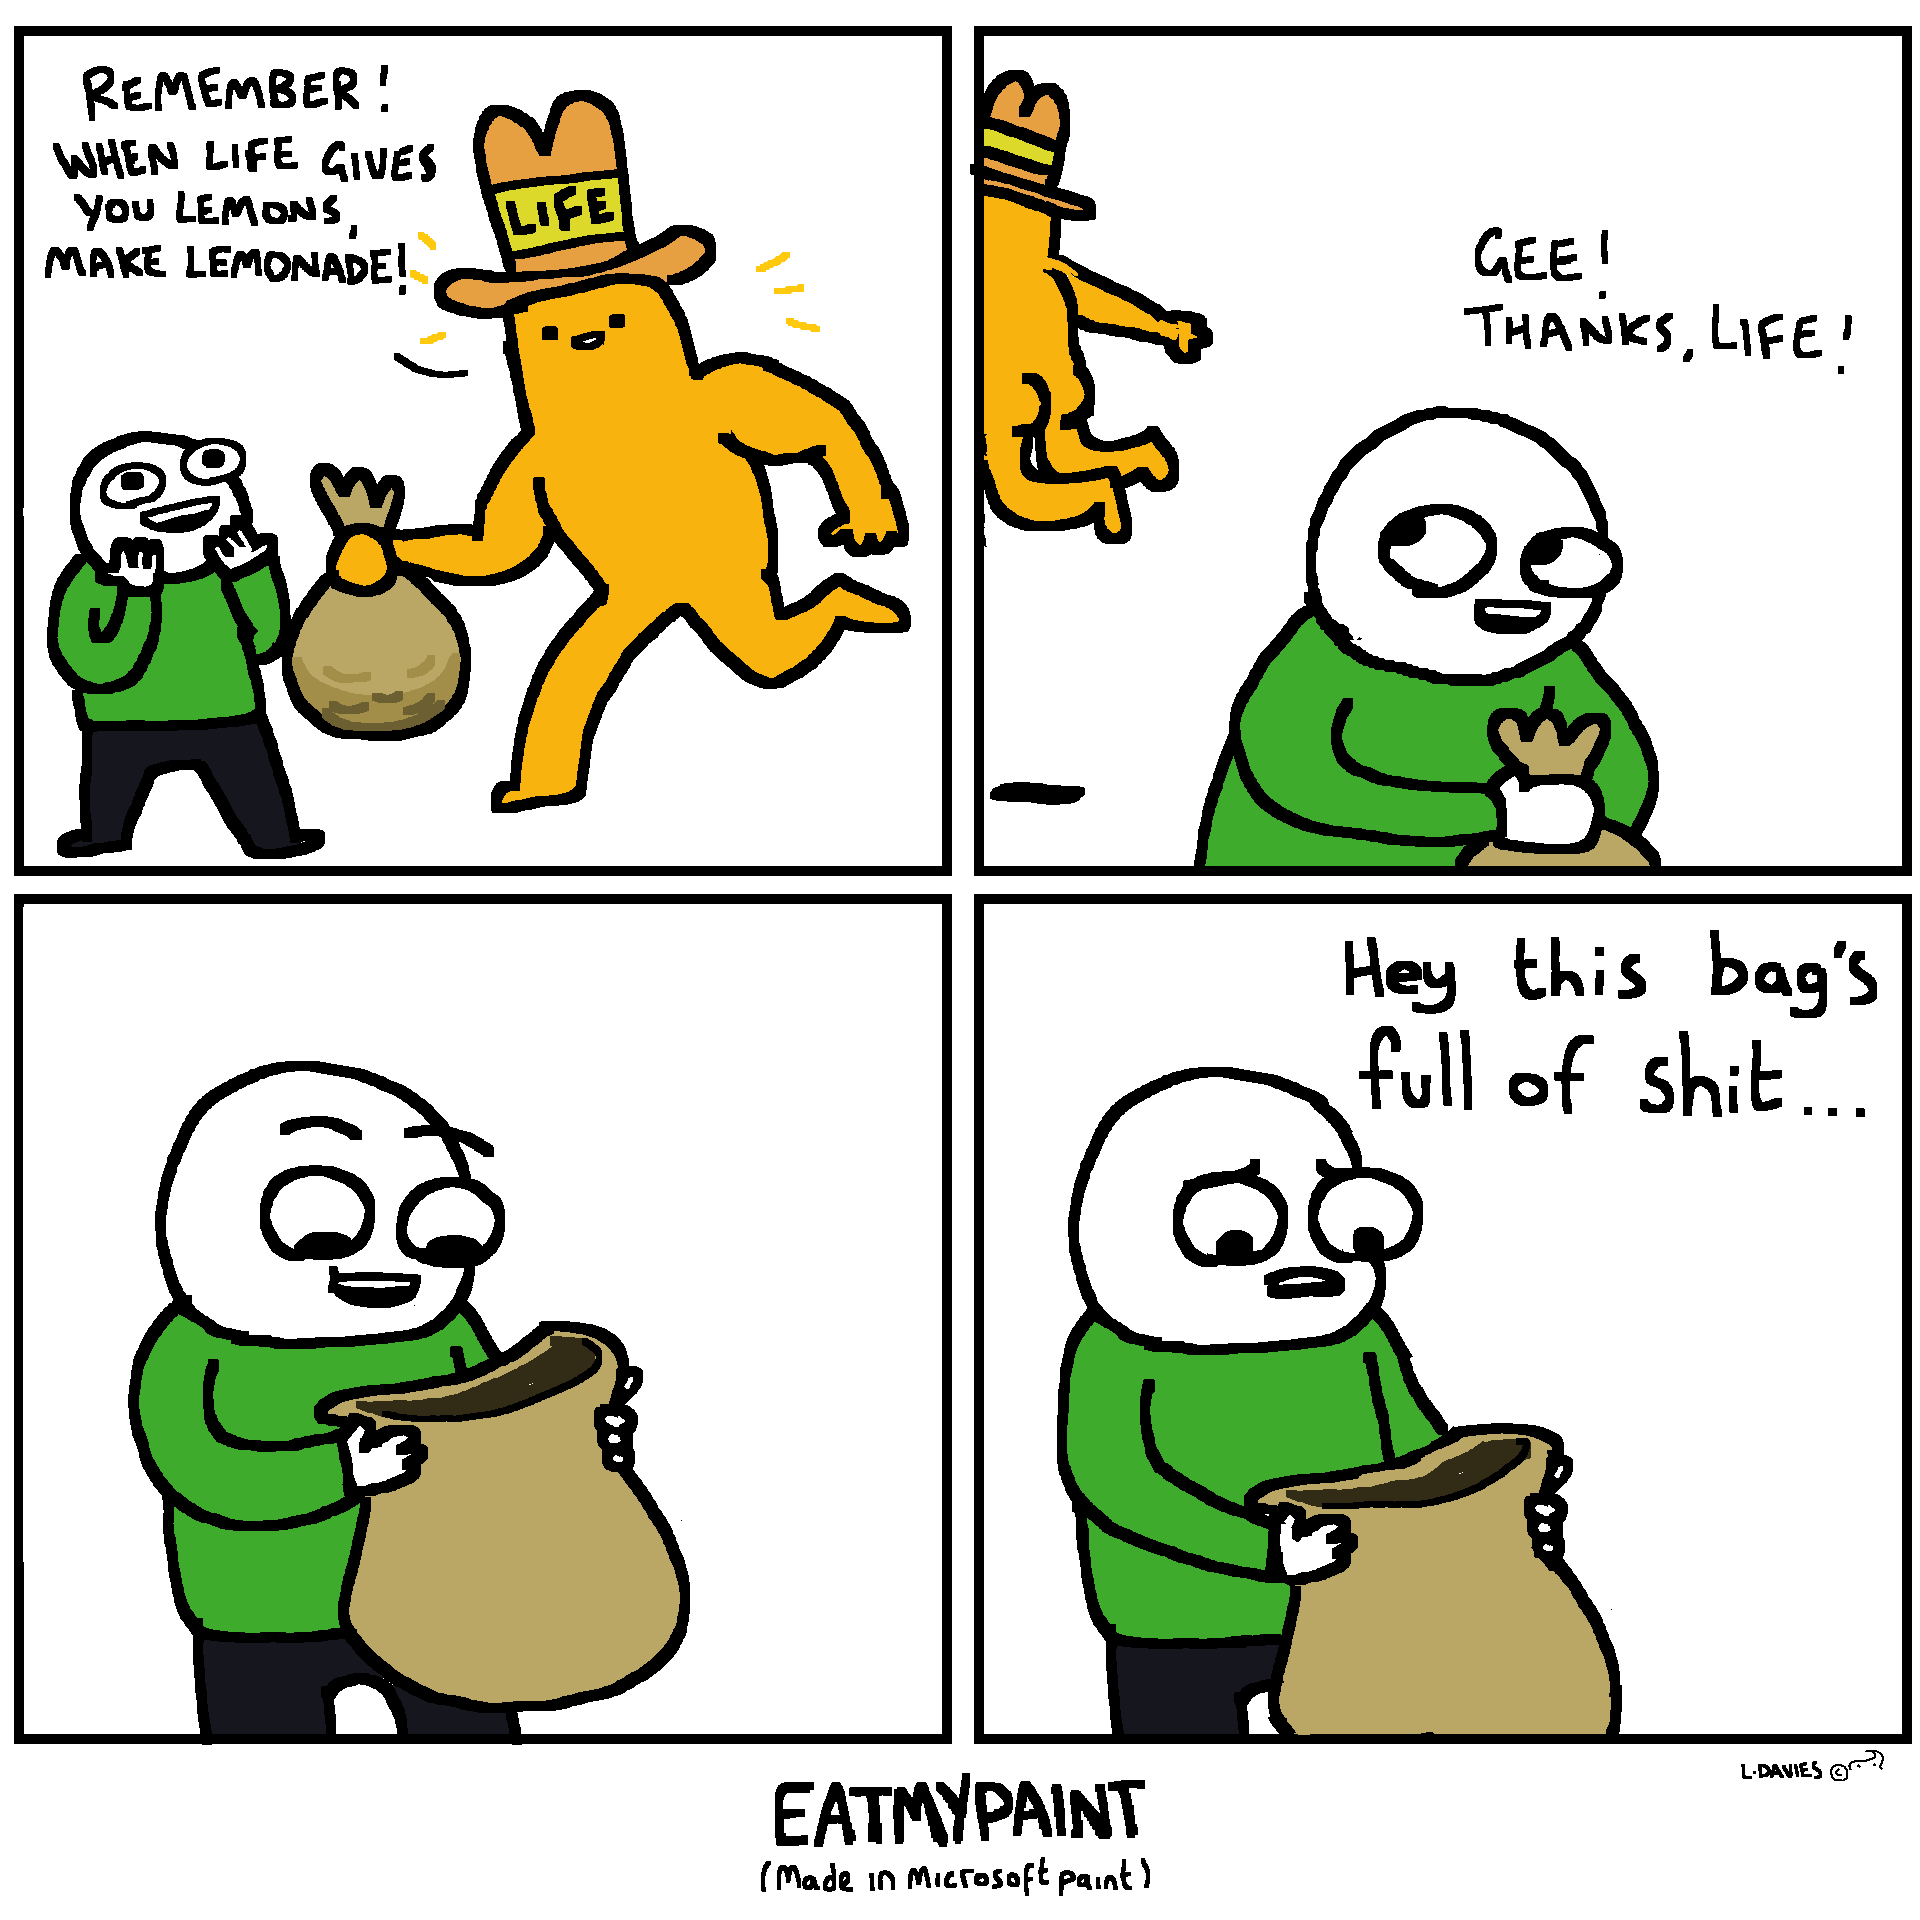 I'm not sure what that Life guy is eatin' but he sure fills a lot of bags!